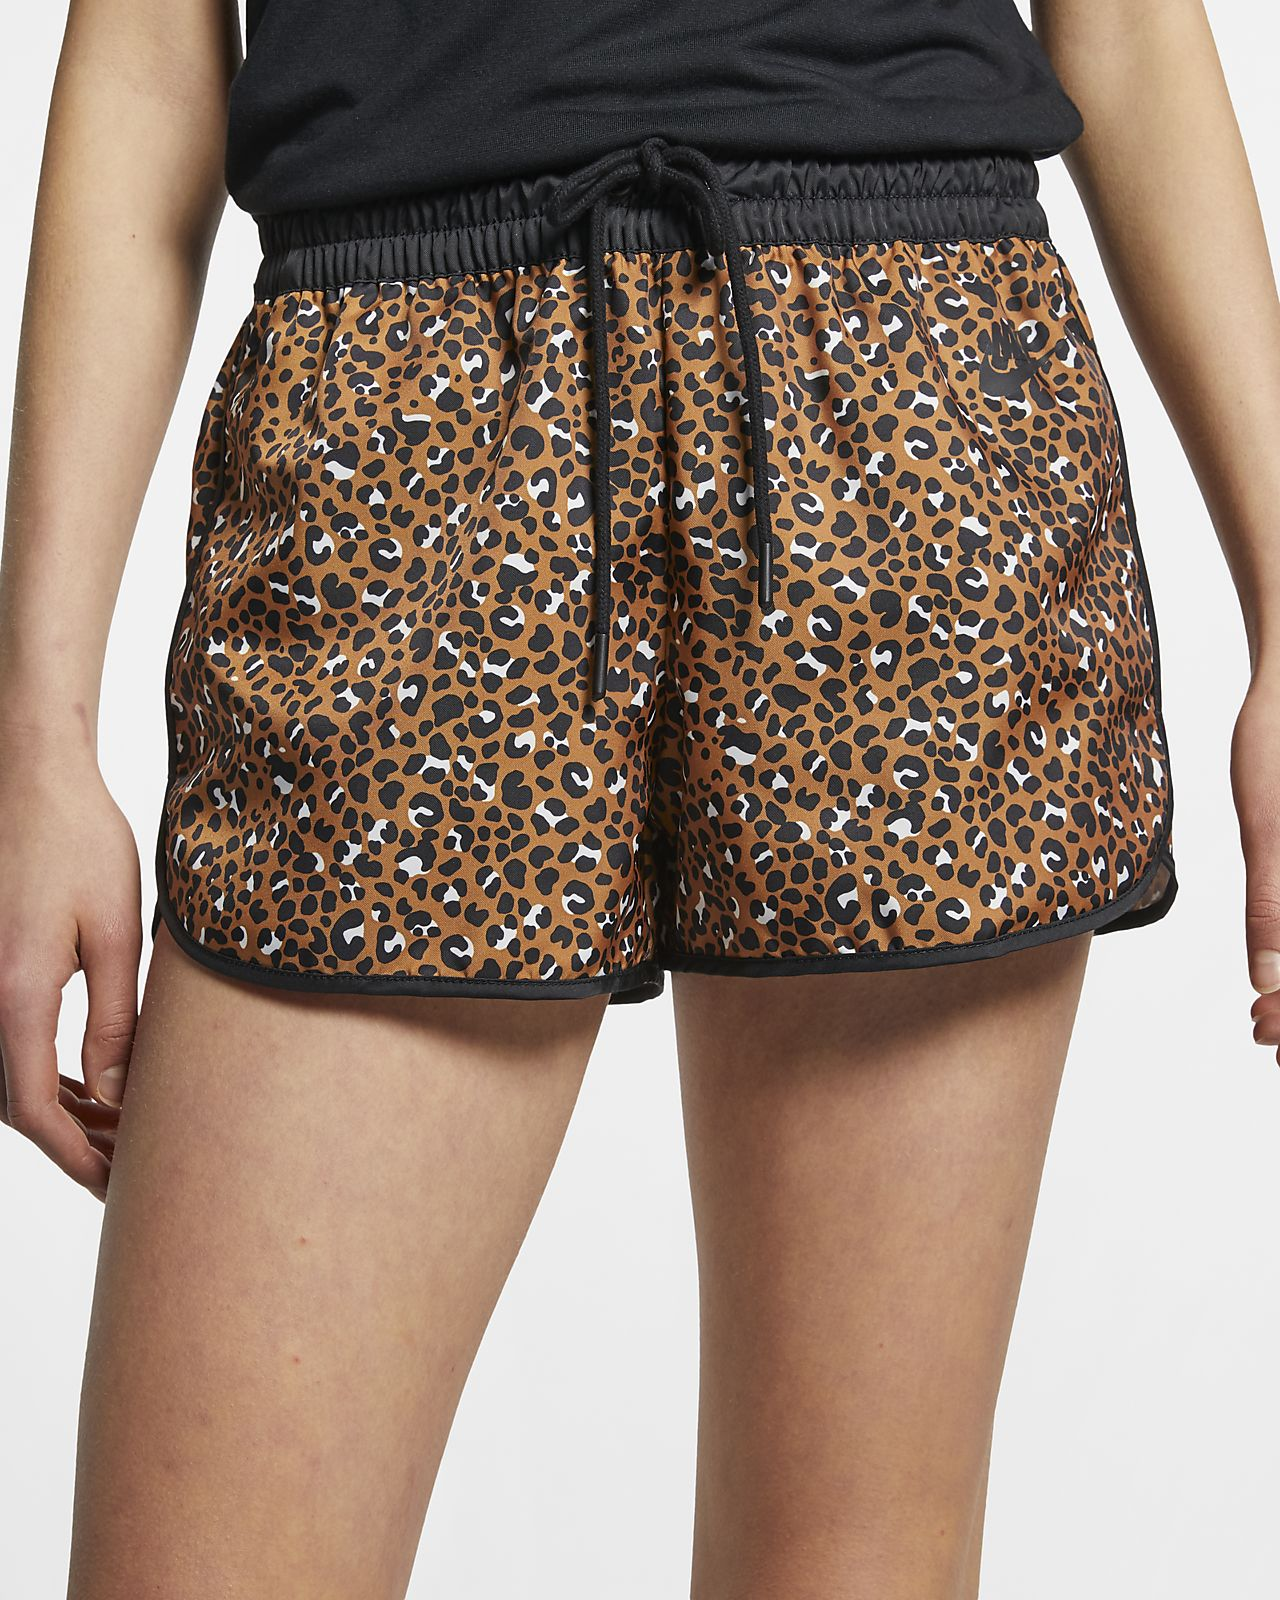 Shorts woven Nike Sportswear Animal Print - Donna